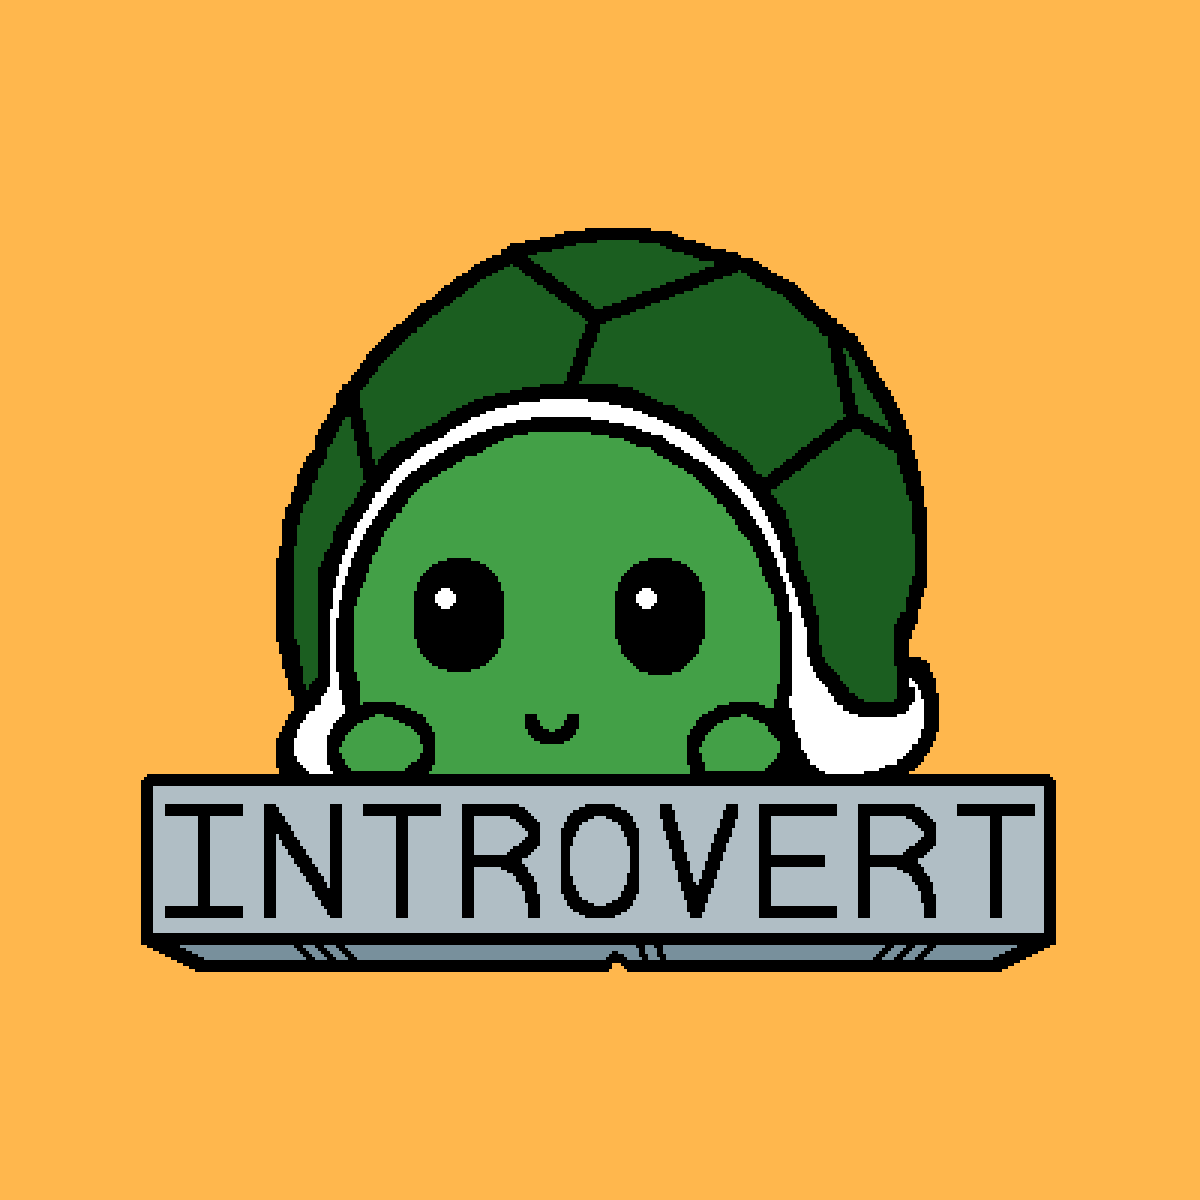 Introvert by WasabiCat